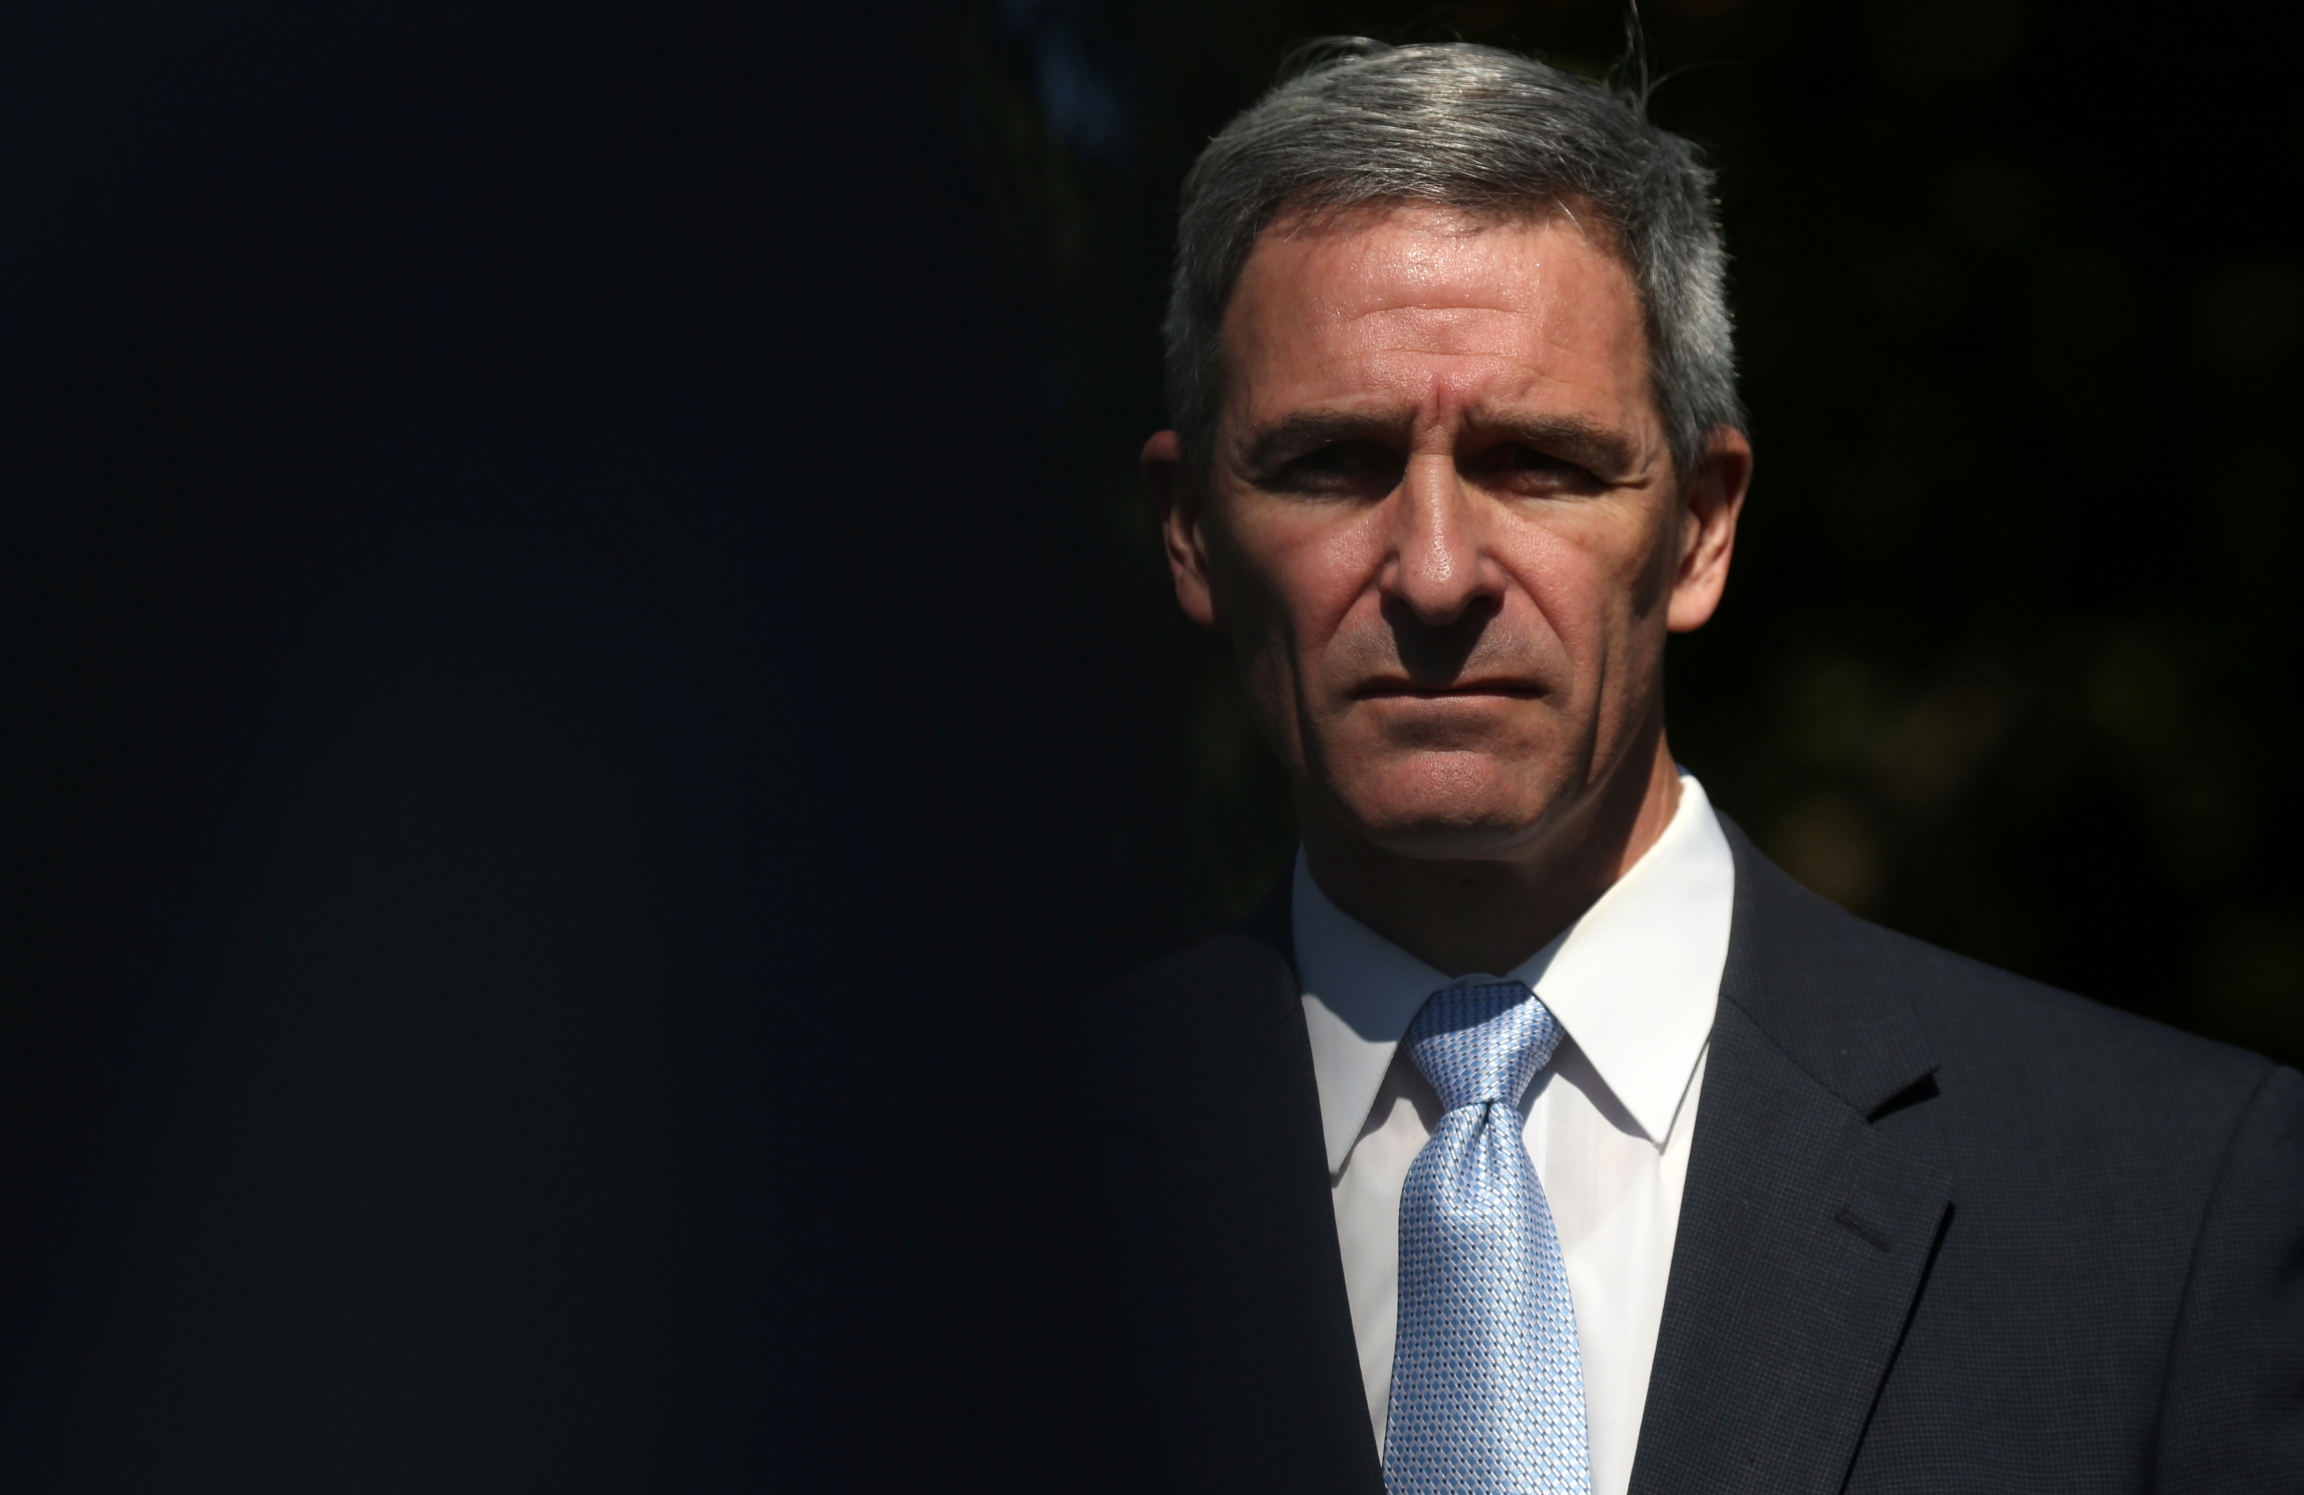 Immigration hawk KenCuccinelli, acting director of USCitizenship and Immigration Services, speaks to the news media at the White House in Washington, DC, onSept. 27, 2019.